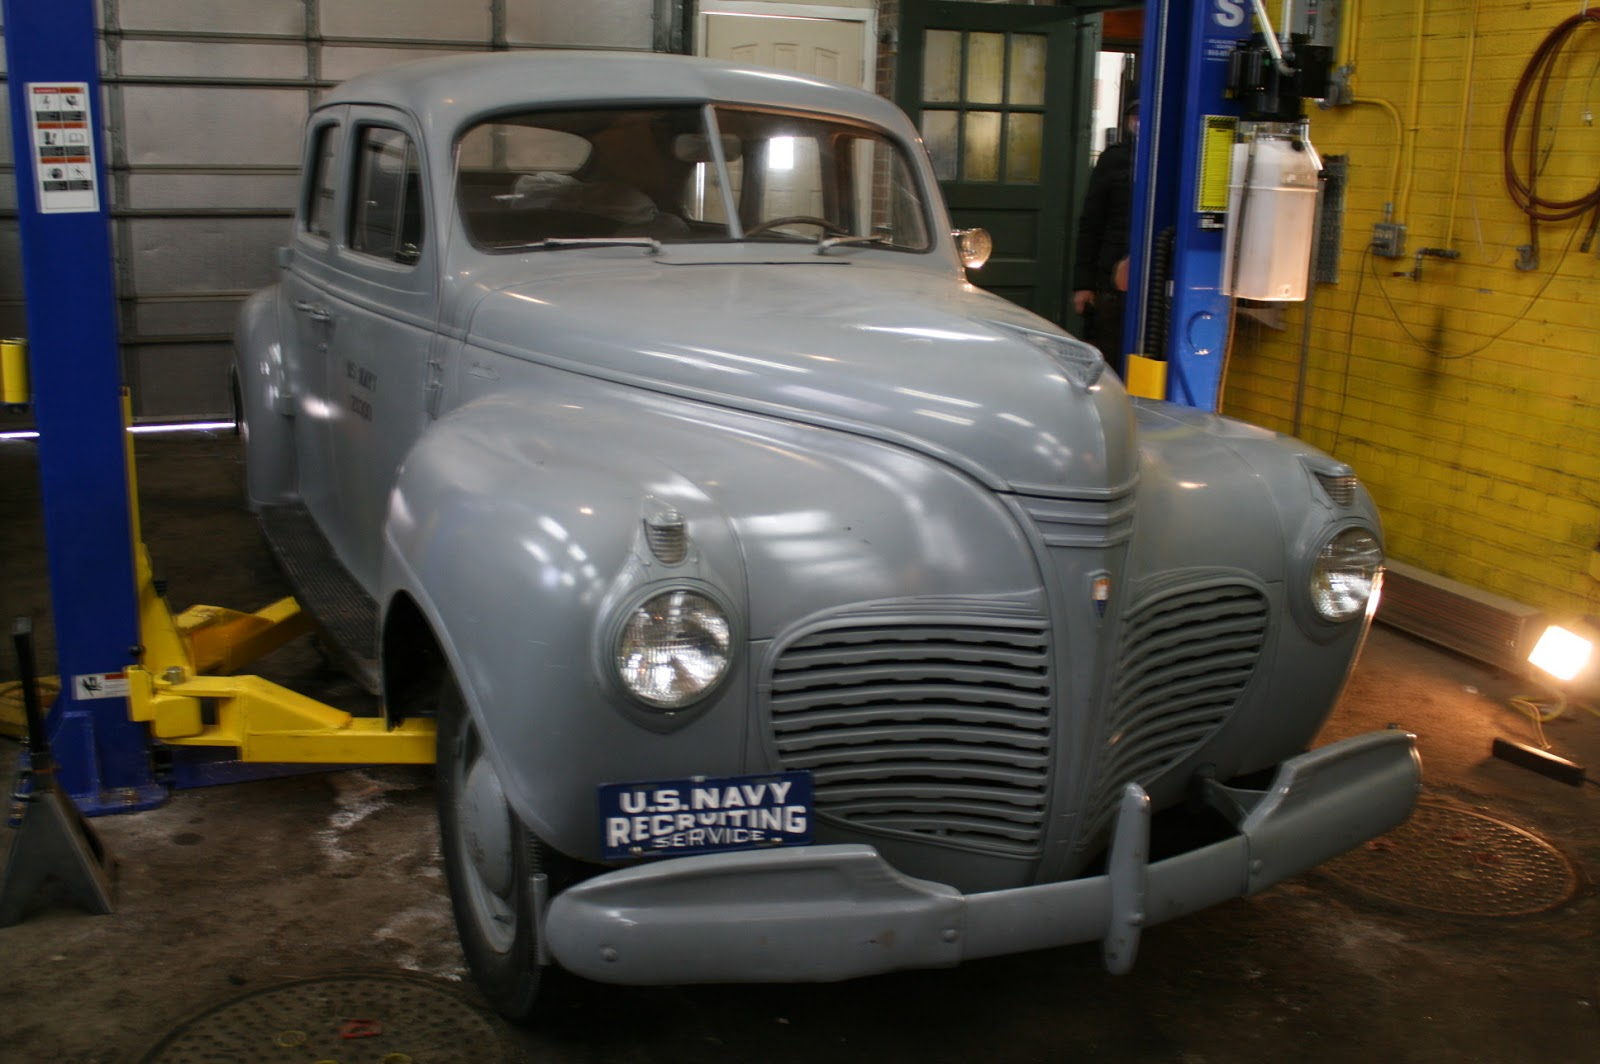 World War Two Daily June 28 1941 Minsk Falls Plymouth 2 Dr Coupe A Restored P12 Special Deluxe 4 Door Sedan Staff Car